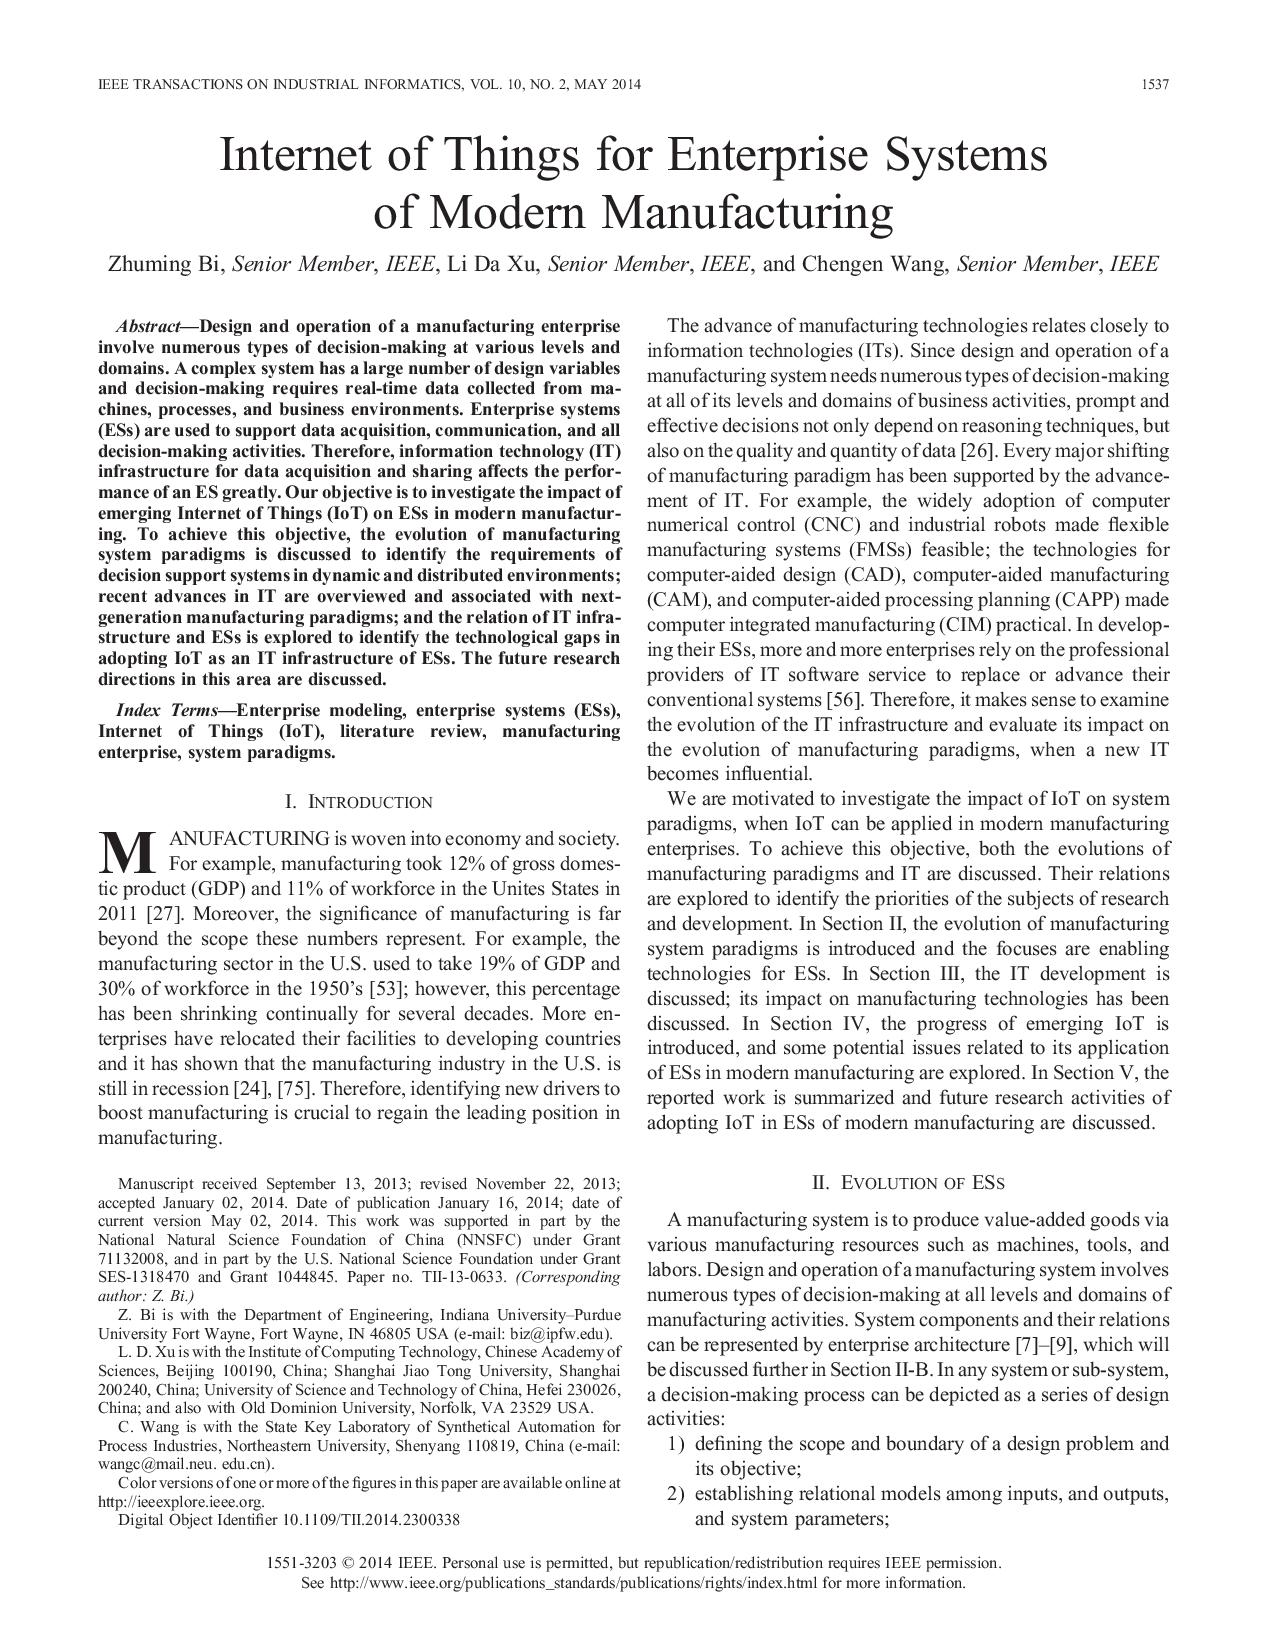 Internet of Things for Enterprise Systems of Modern Manufacturing